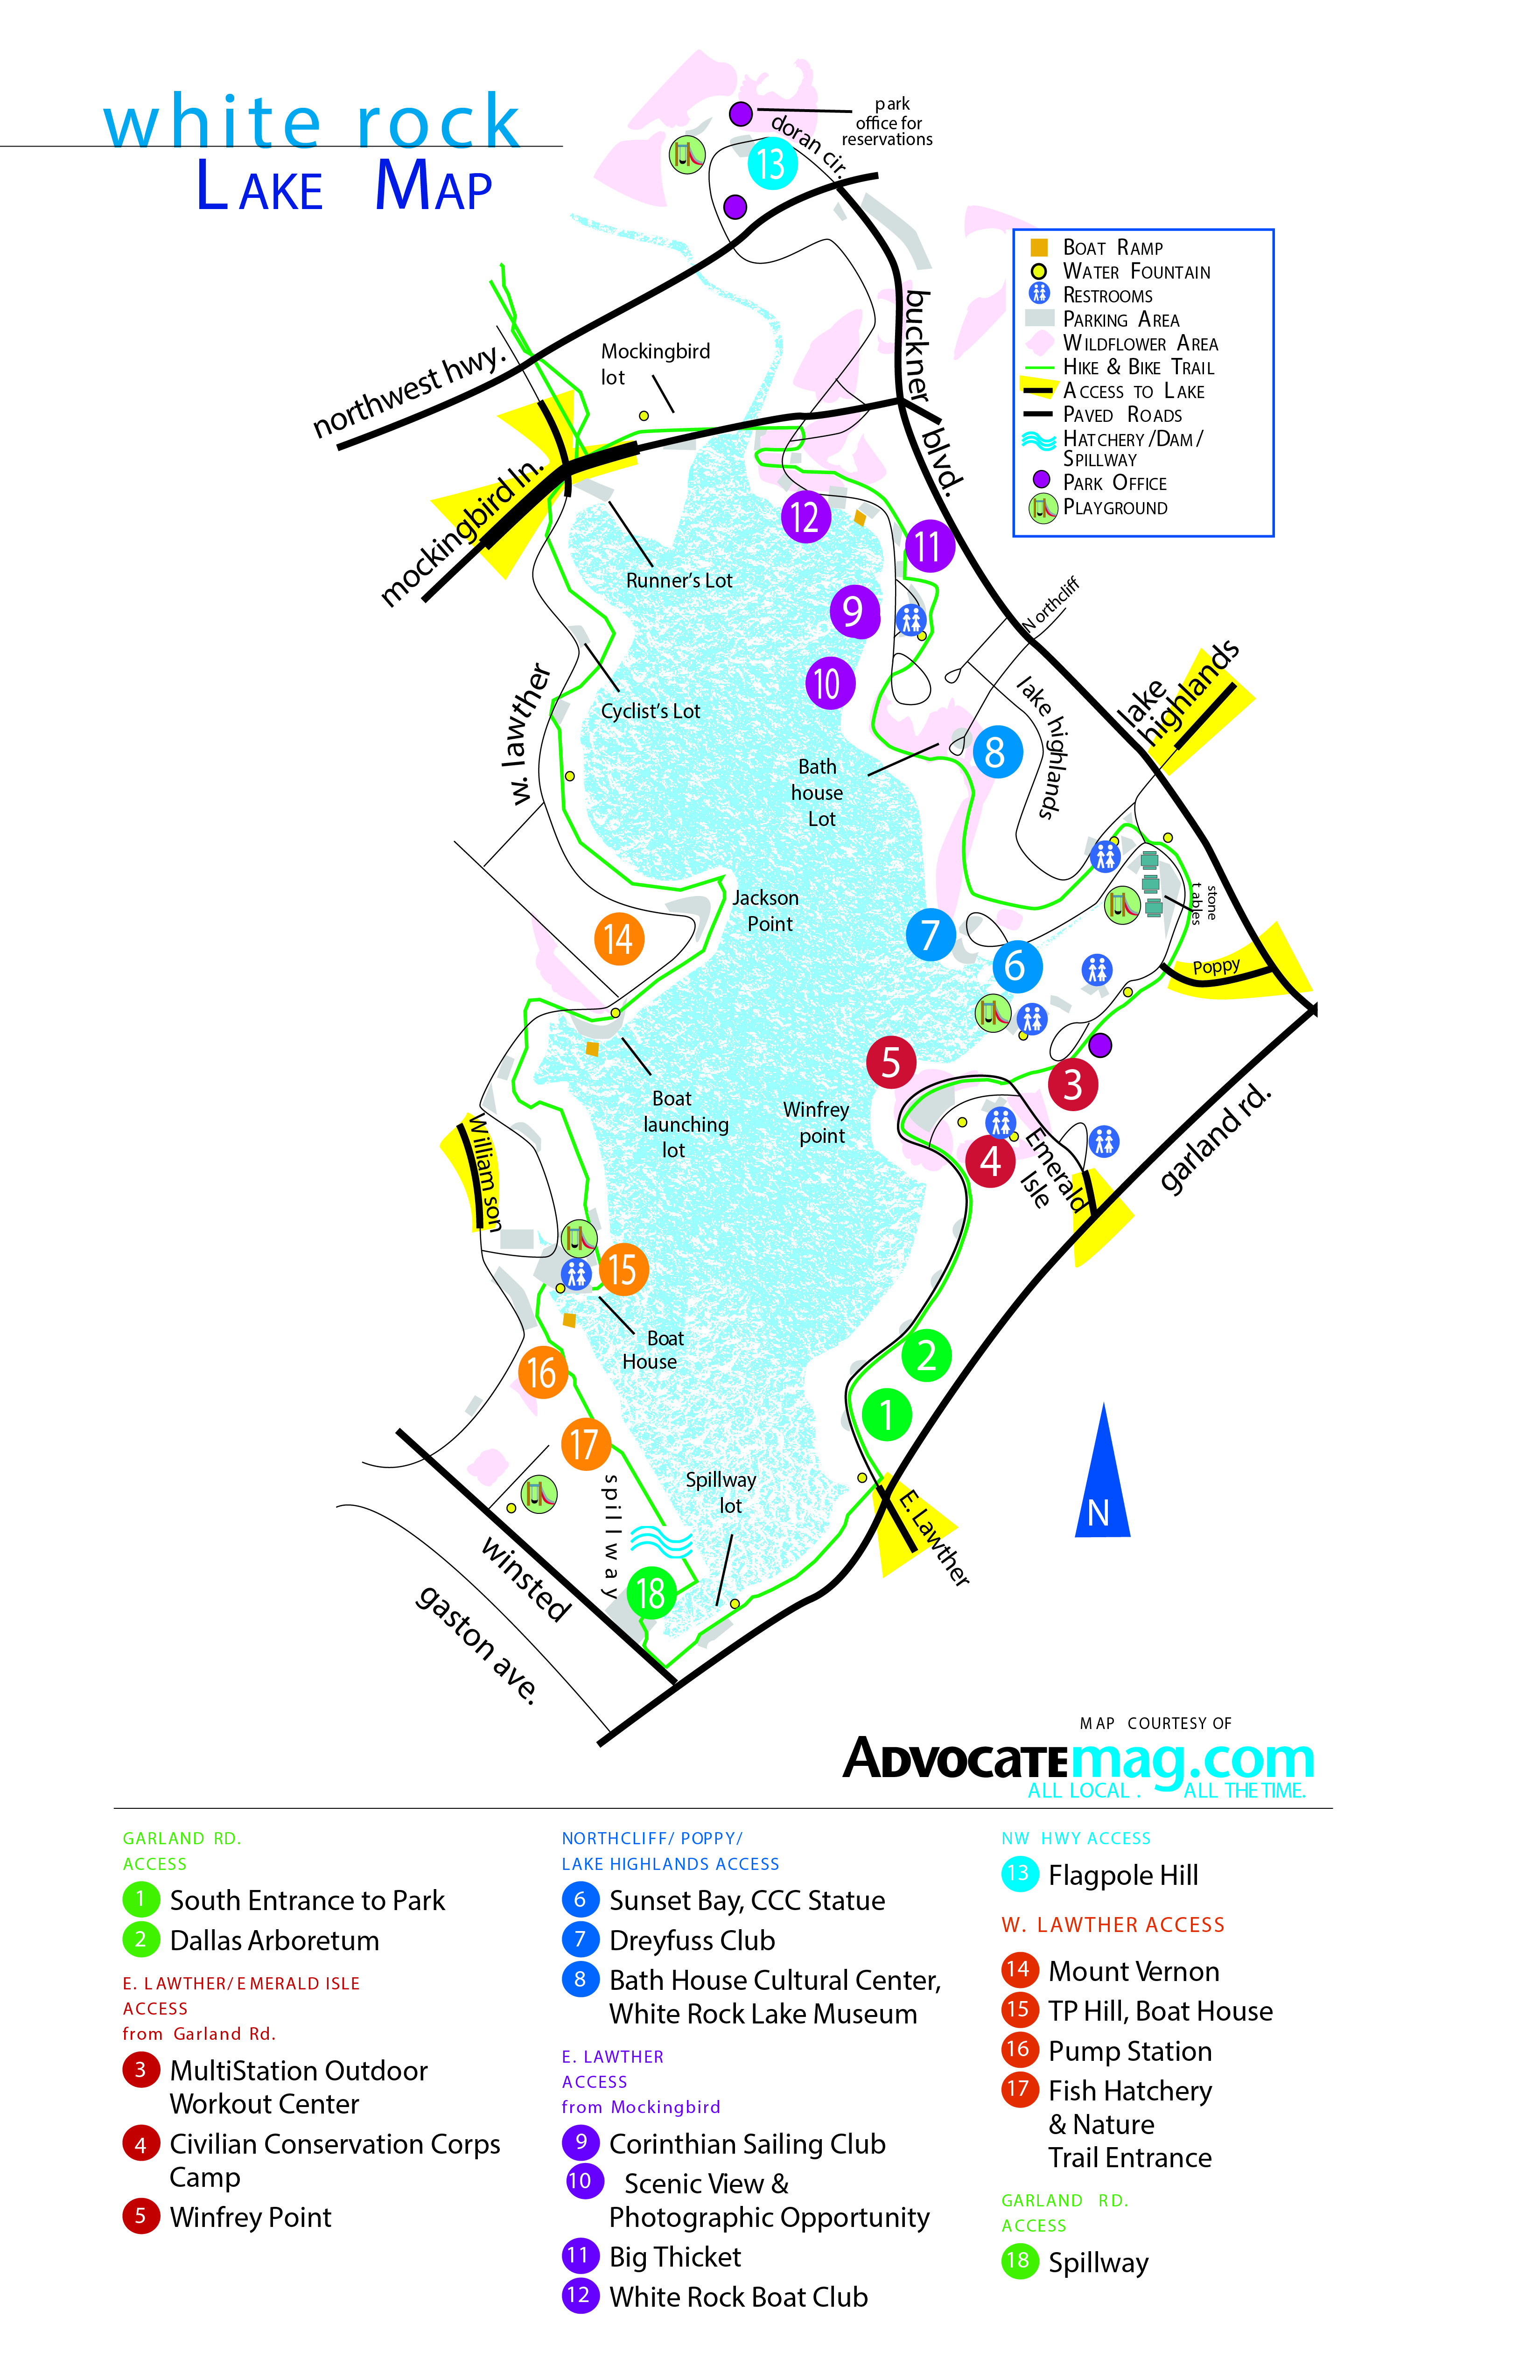 White Rock Lake Map